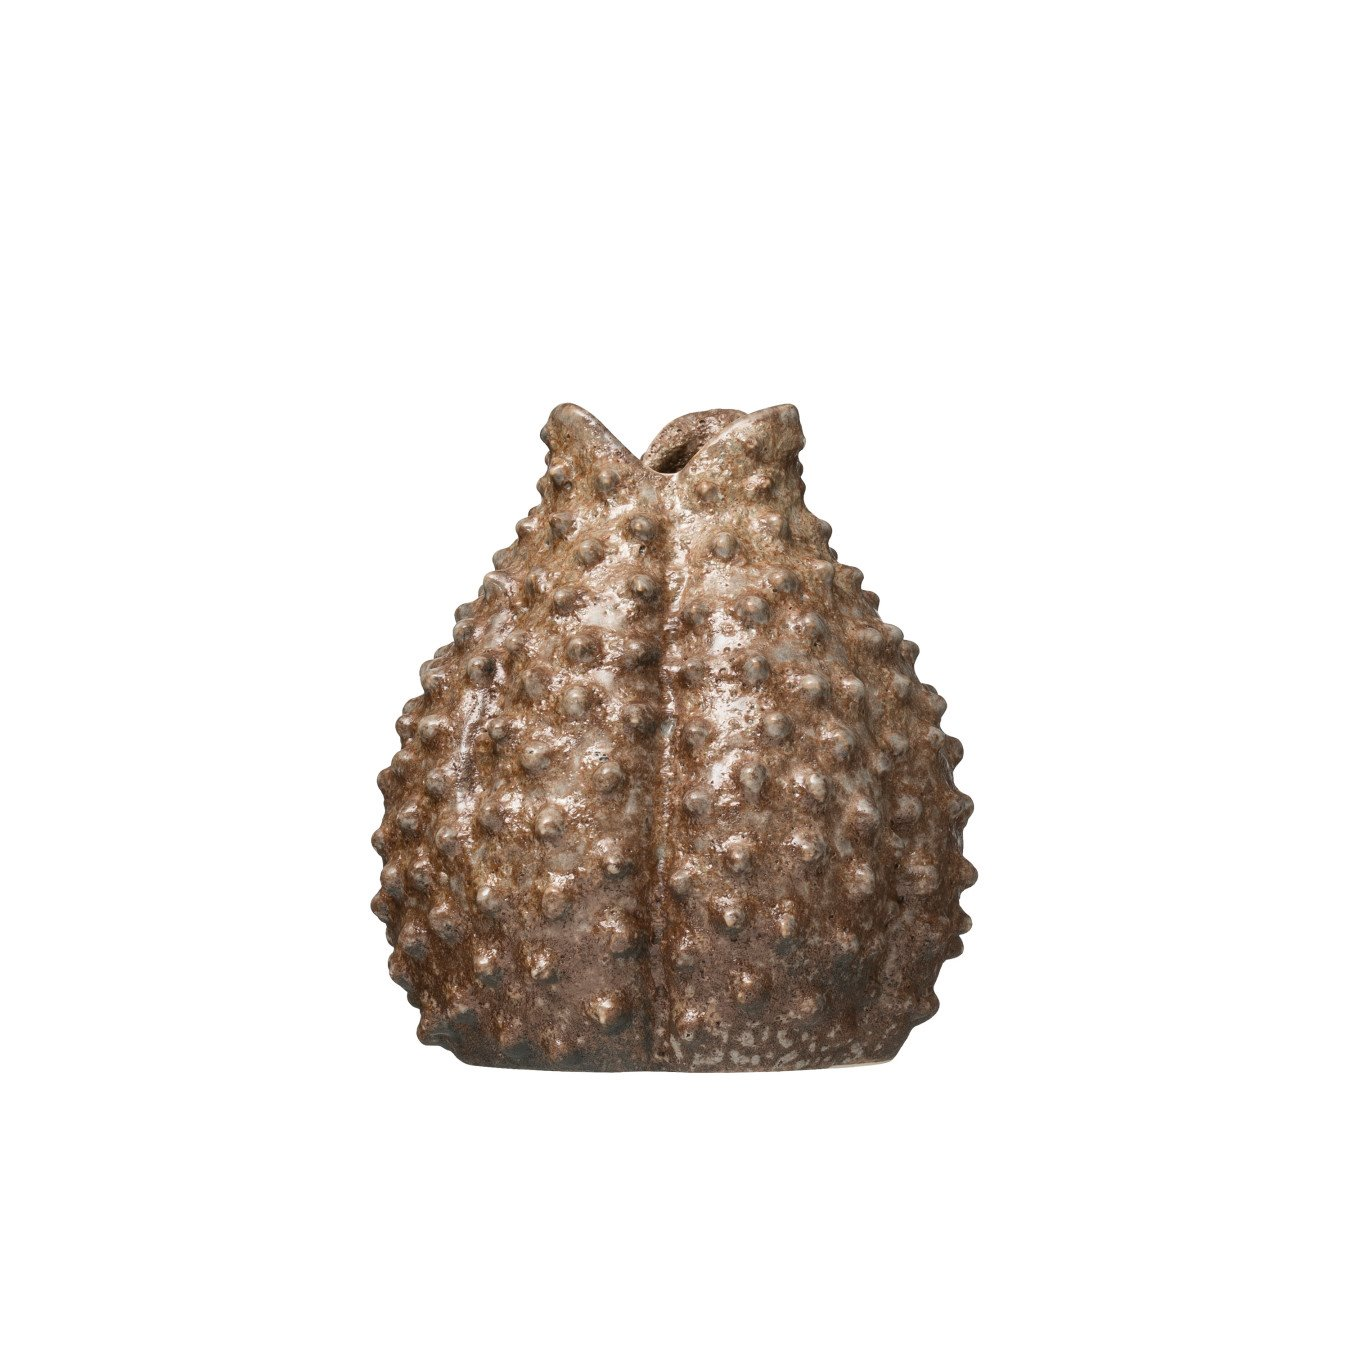 """7.5""""H Blow Puff-Shaped Stoneware Vase with Reactive Glaze Finish (Each one will vary)"""